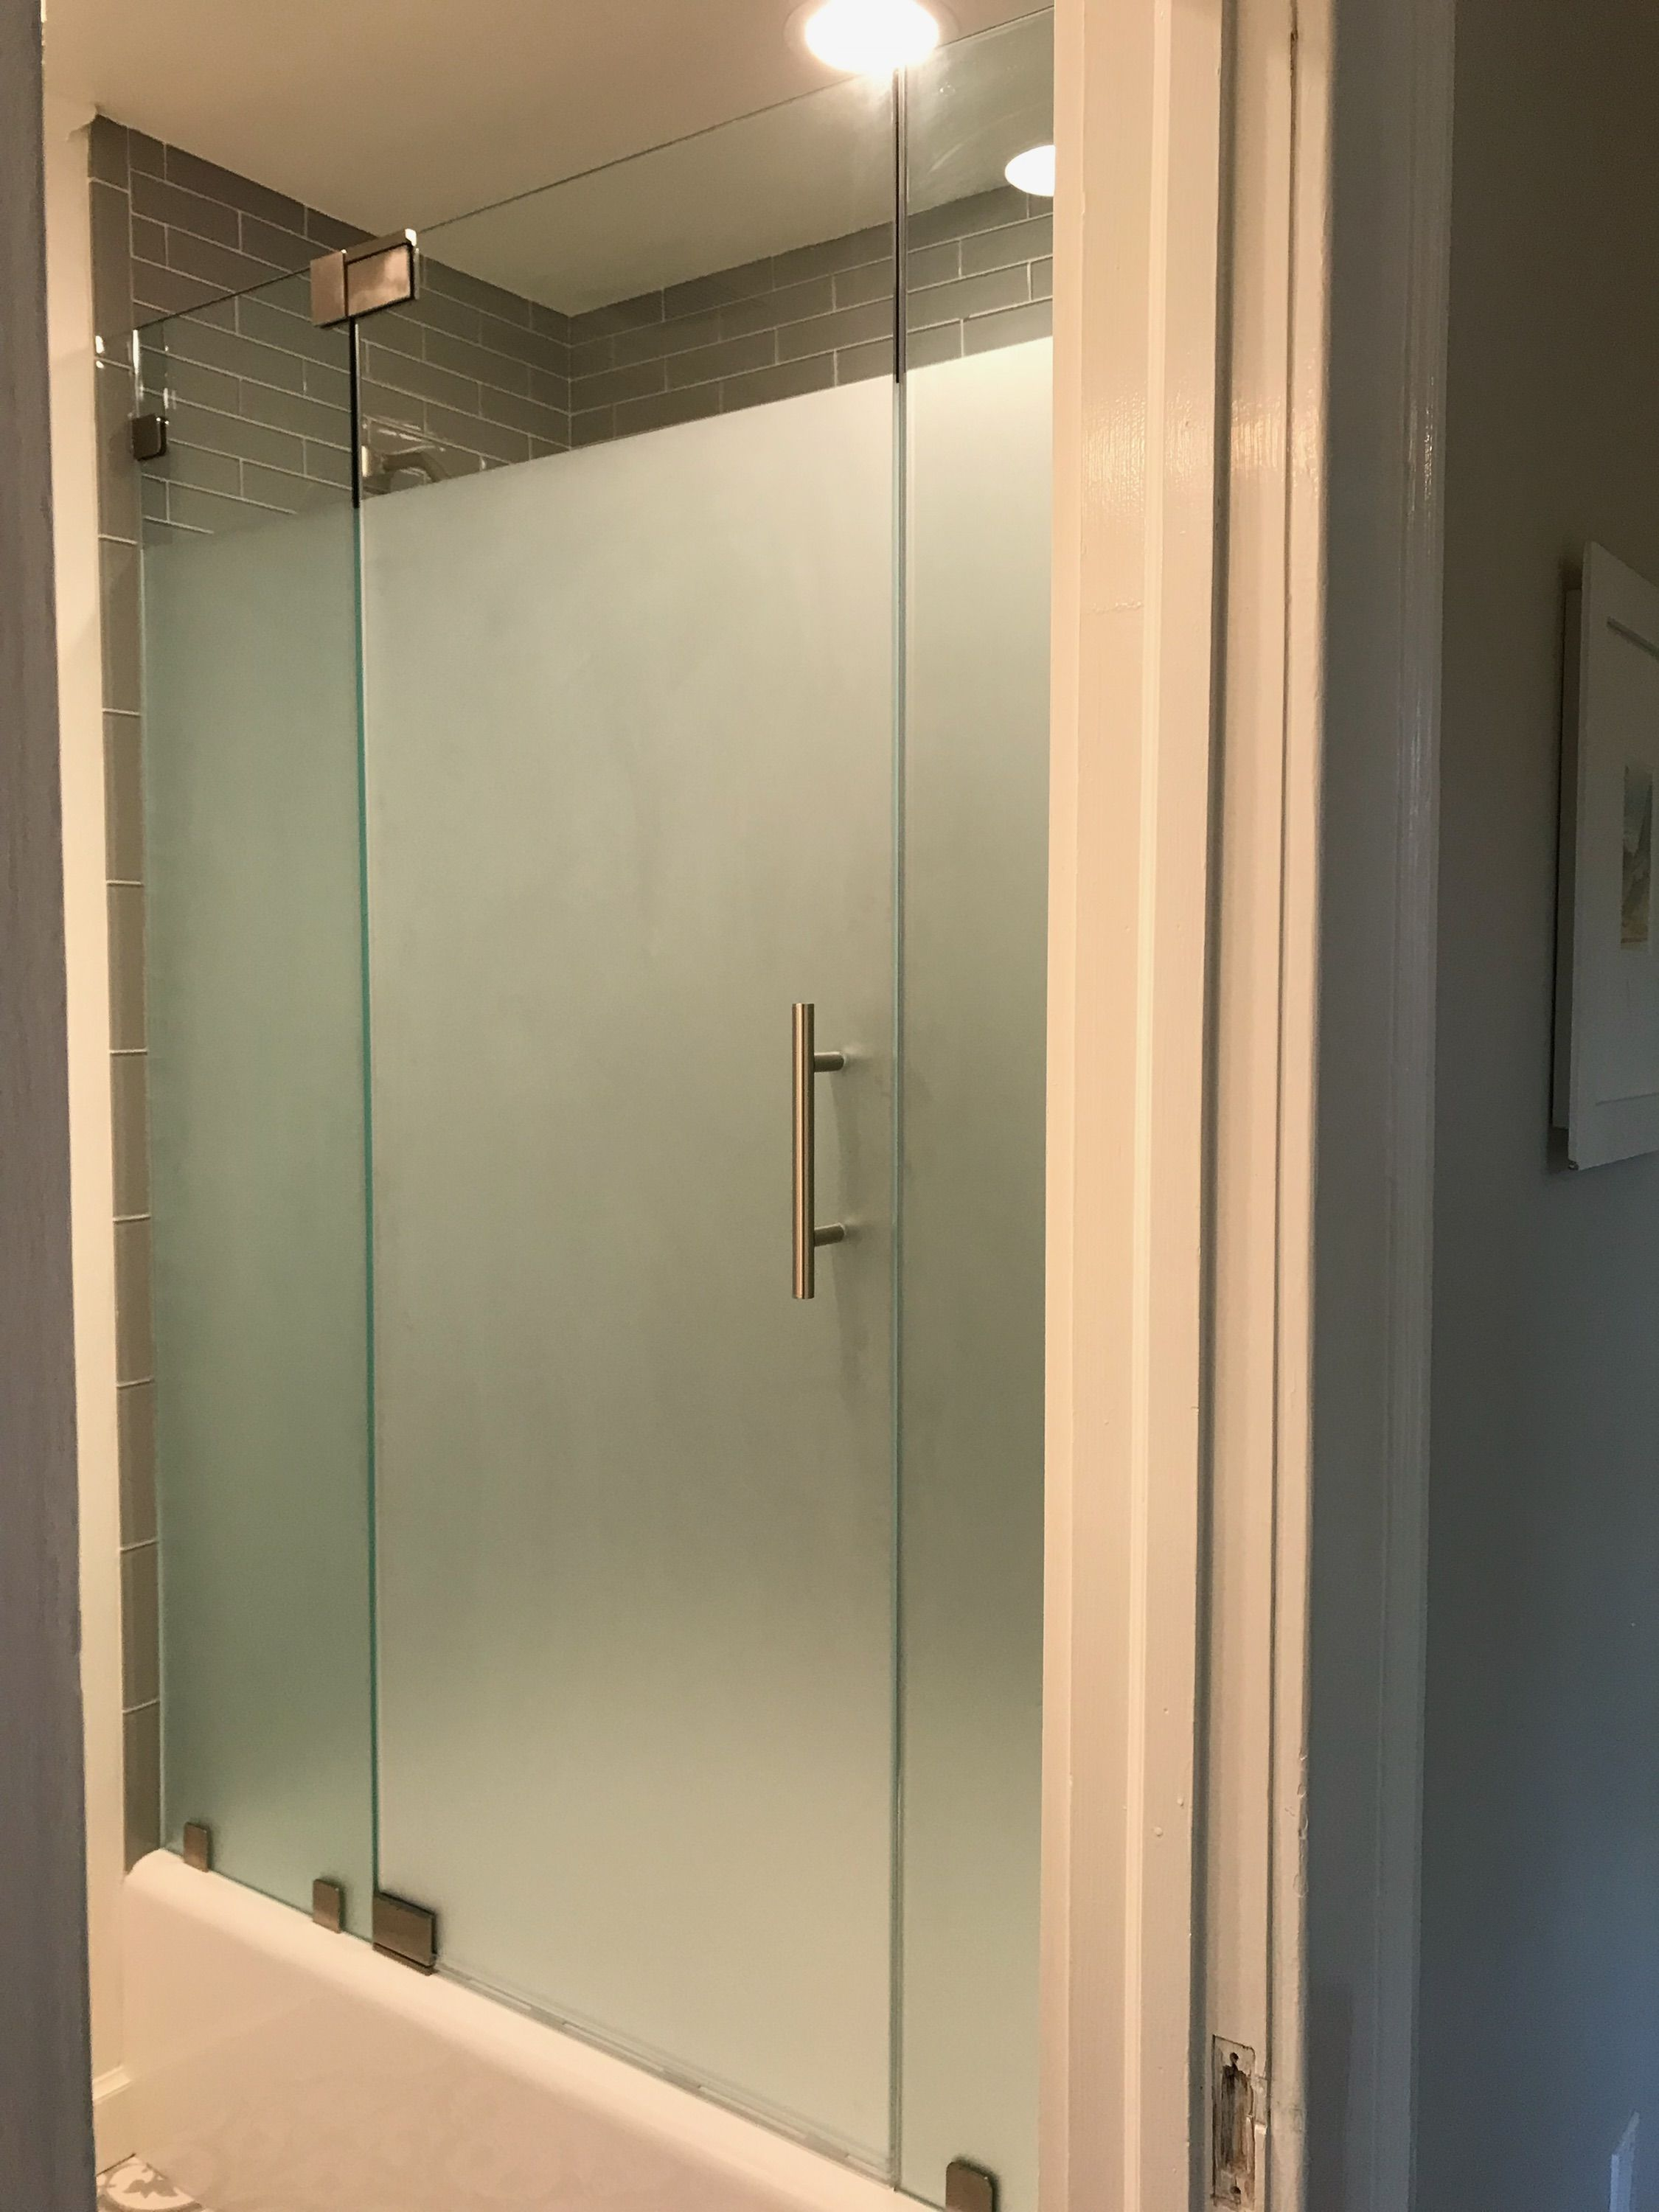 Frameless Enclosure With Glass To Glass Pivot Hinges And Custom Satin Etched Glass To Provide Priv Glass Shower Enclosures Frameless Shower Doors Glass Shower